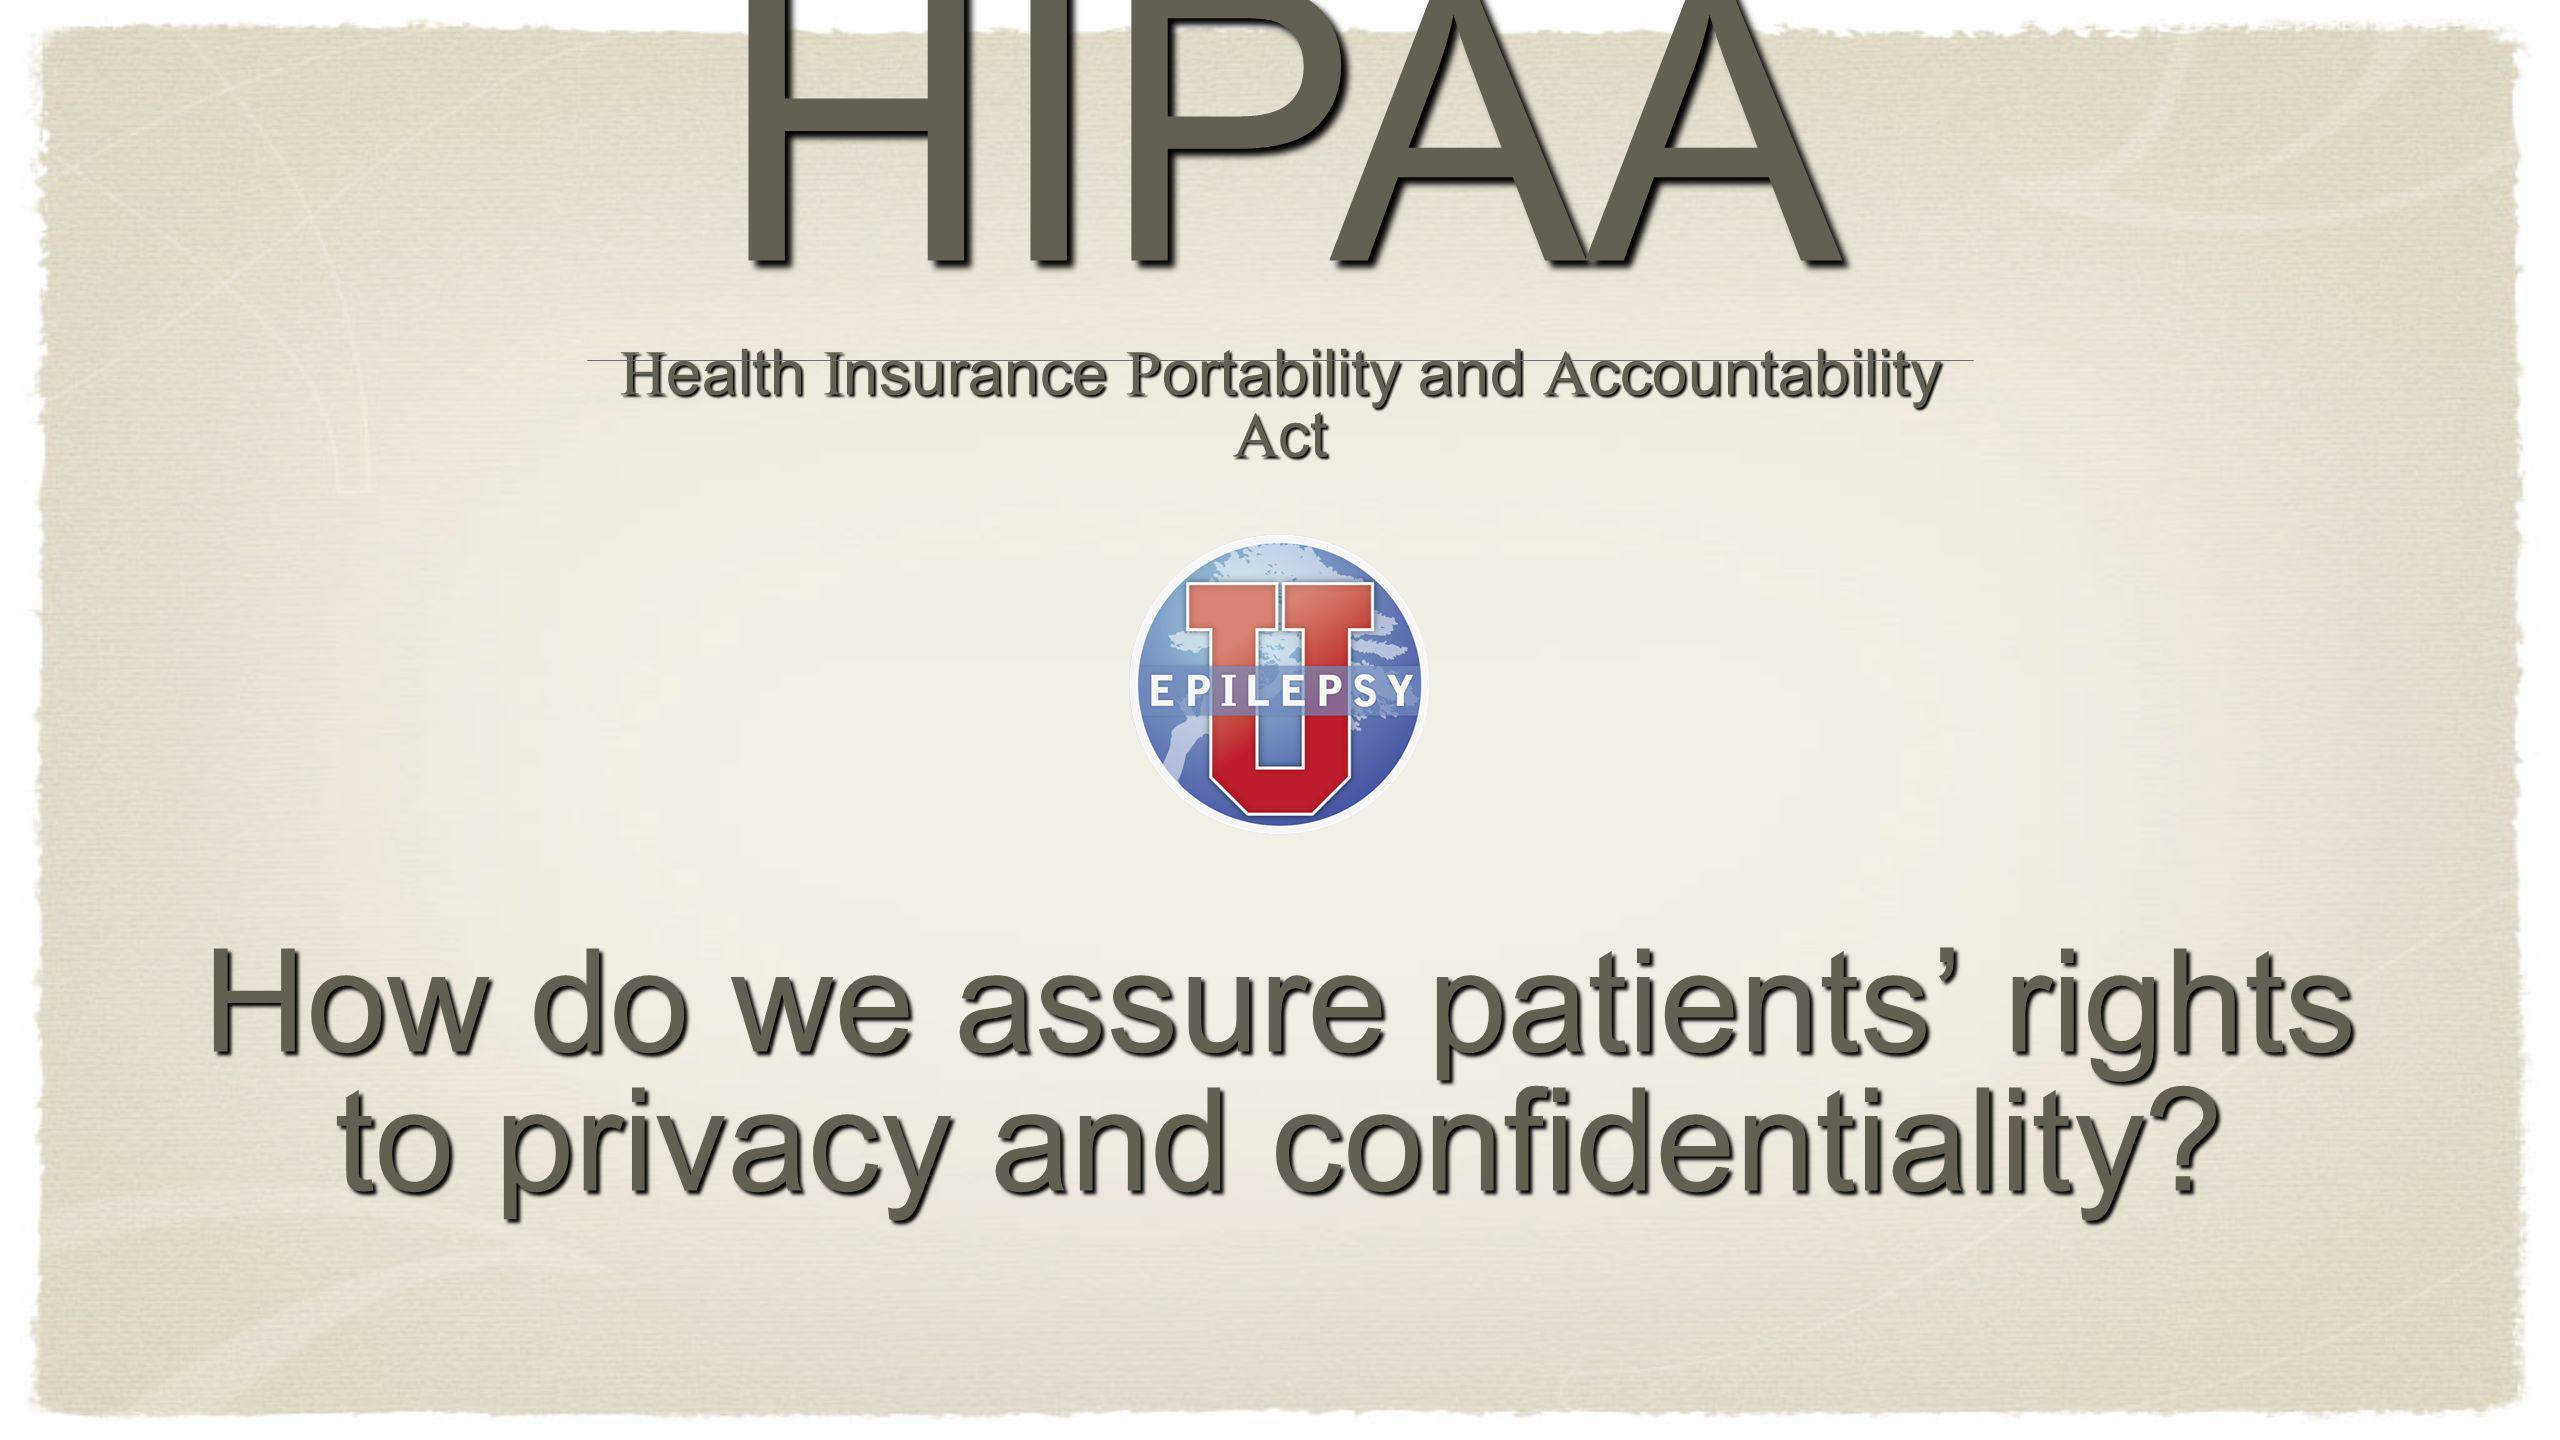 How do we assure patients' rights to privacy and confidentiality